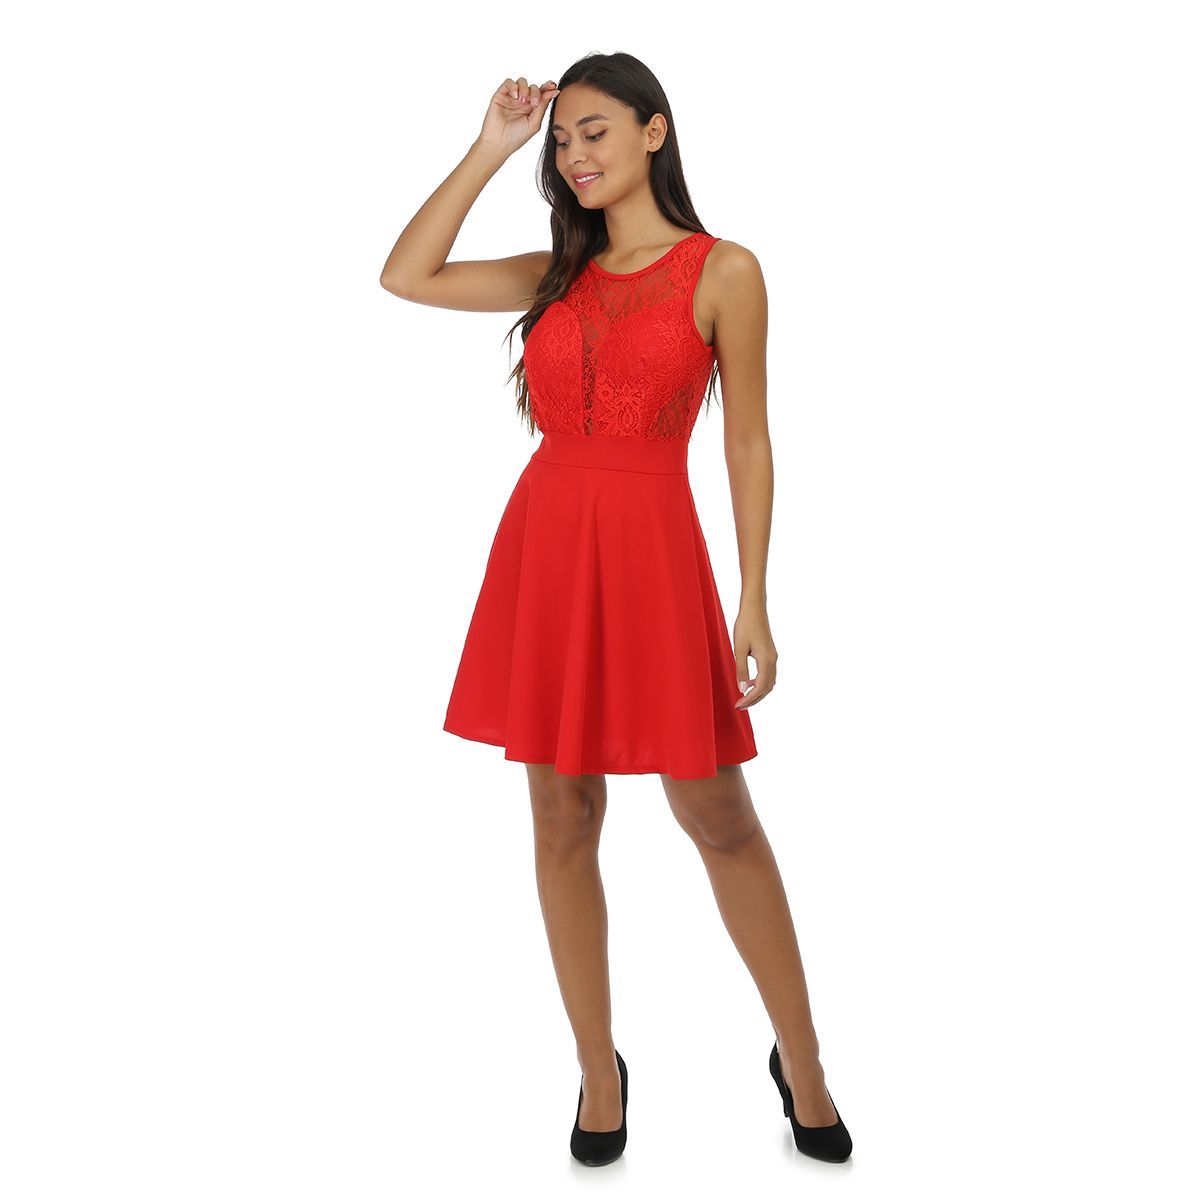 Robe rouge patineuse à dentelle